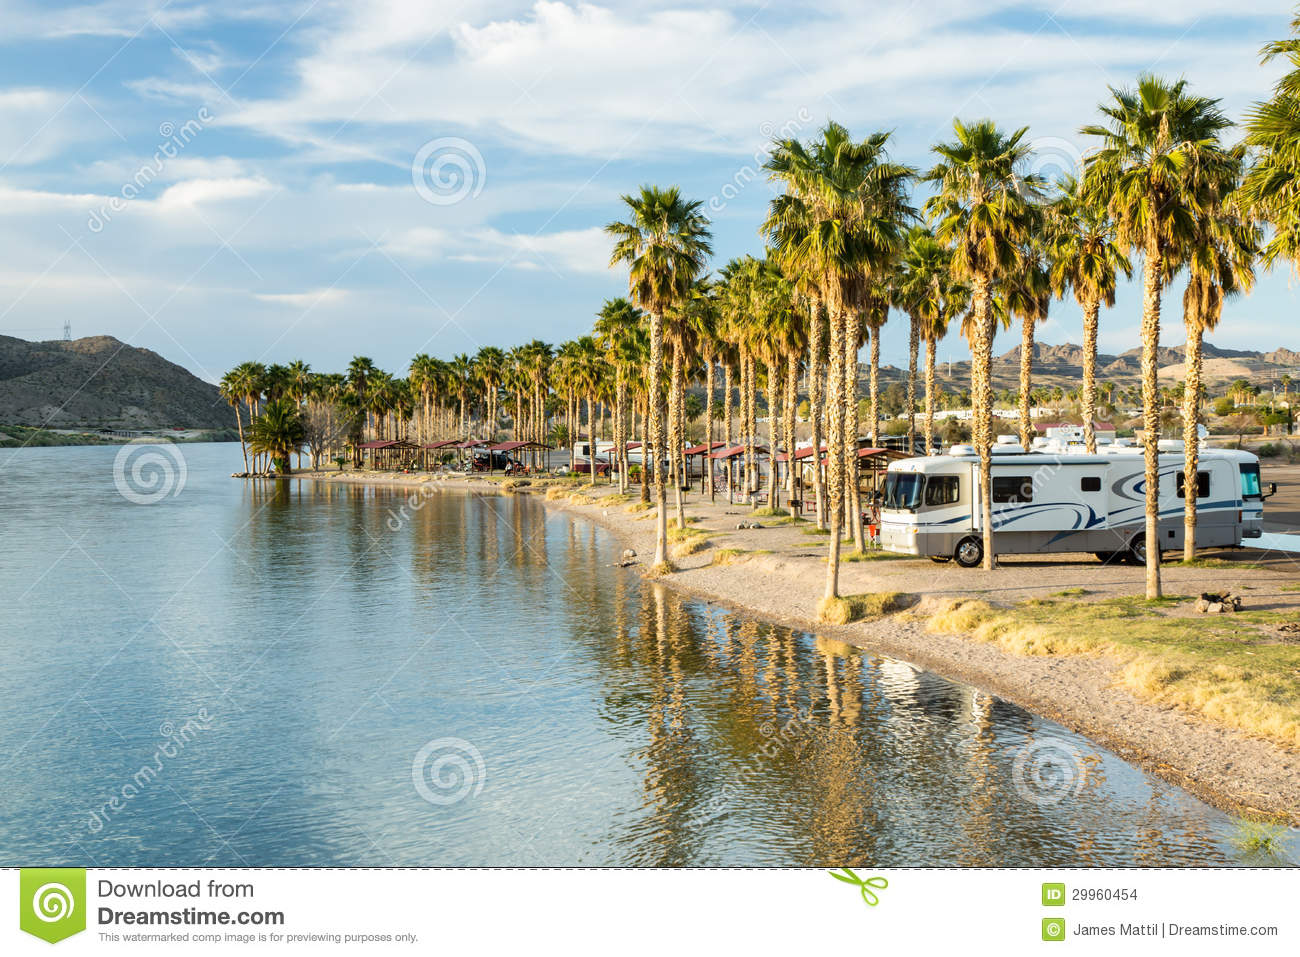 ... River in Laughlin, Nevada, with sunshine and palm trees in winter